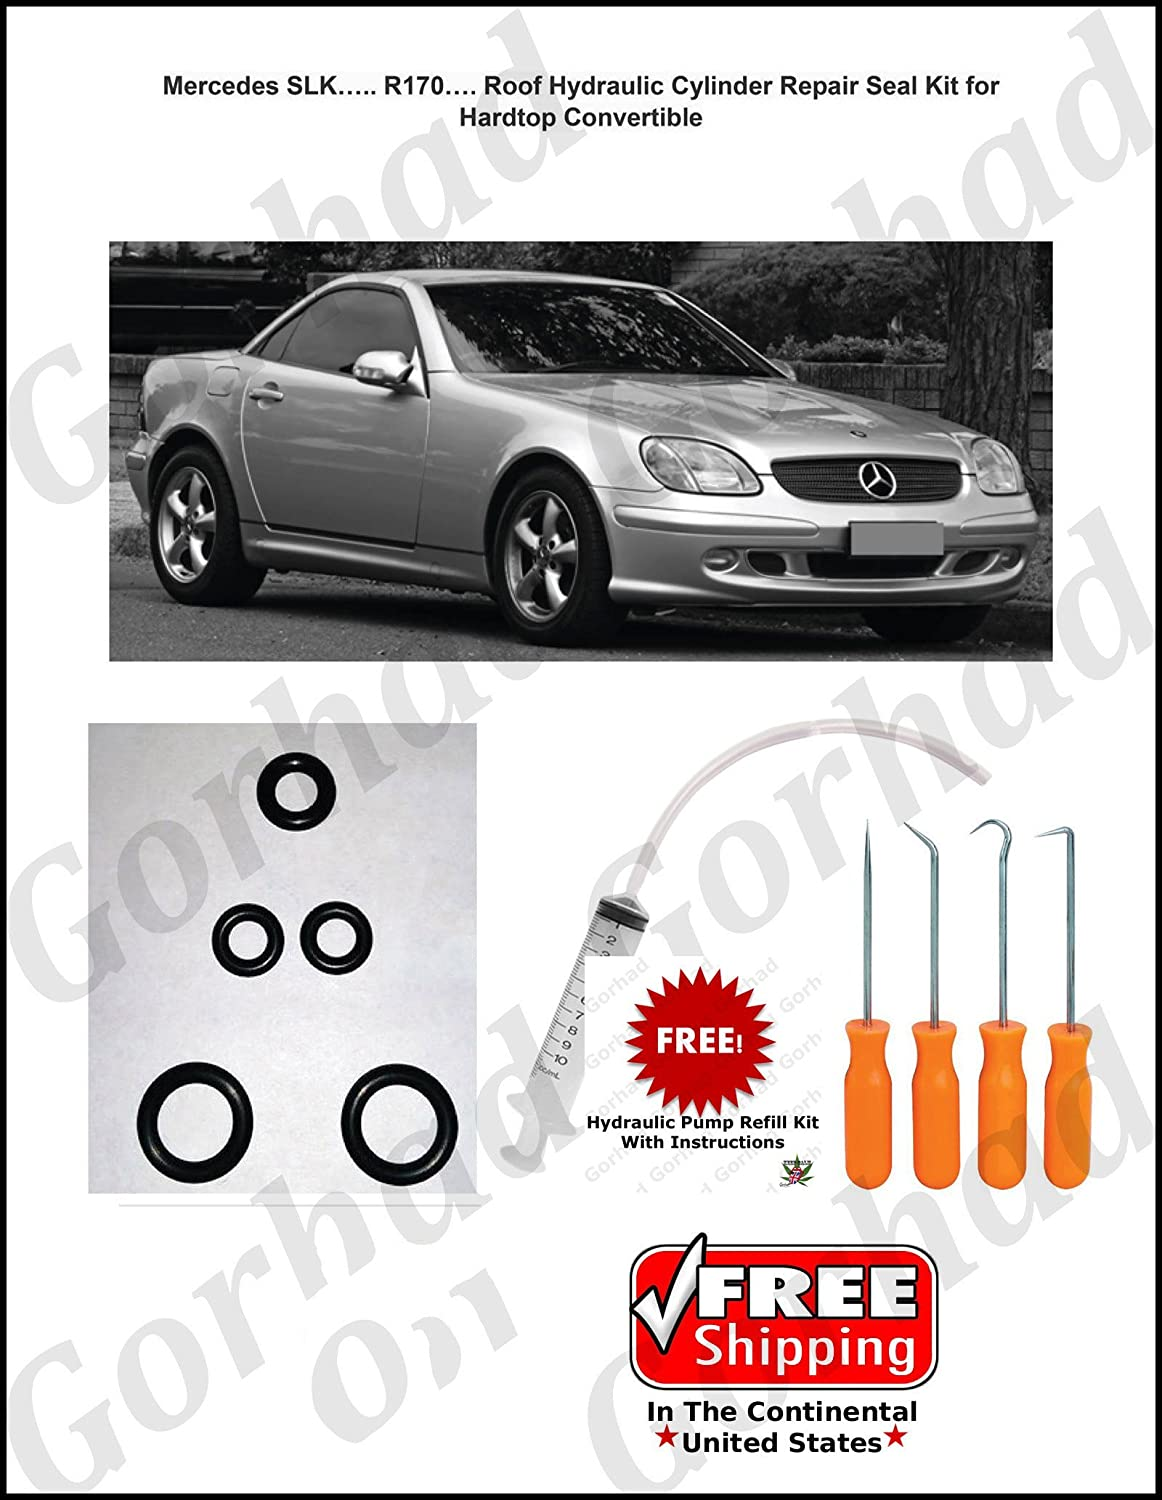 Amazon.com: 96-04 Mercedes SLK 230 Hydraulic Cylinder Repair Kit with Picks  Convertible R170: Automotive